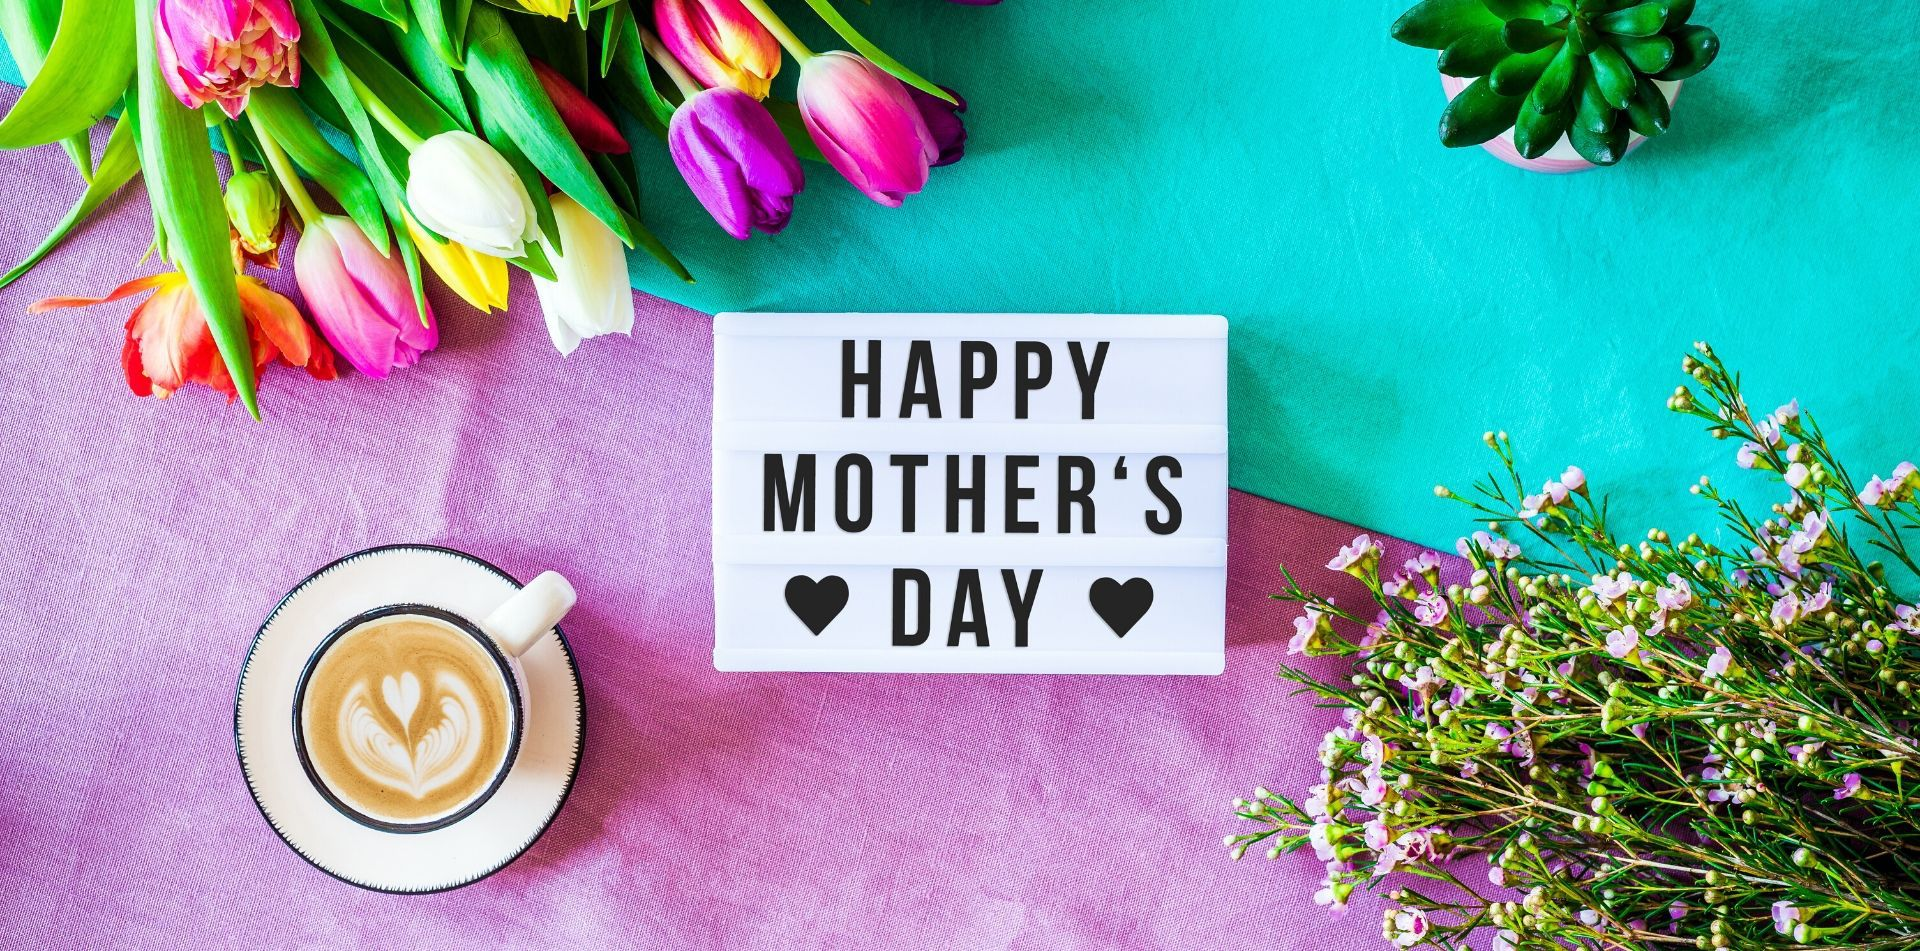 Happy Mother's Day sign with flowers and a latte on a colorful table